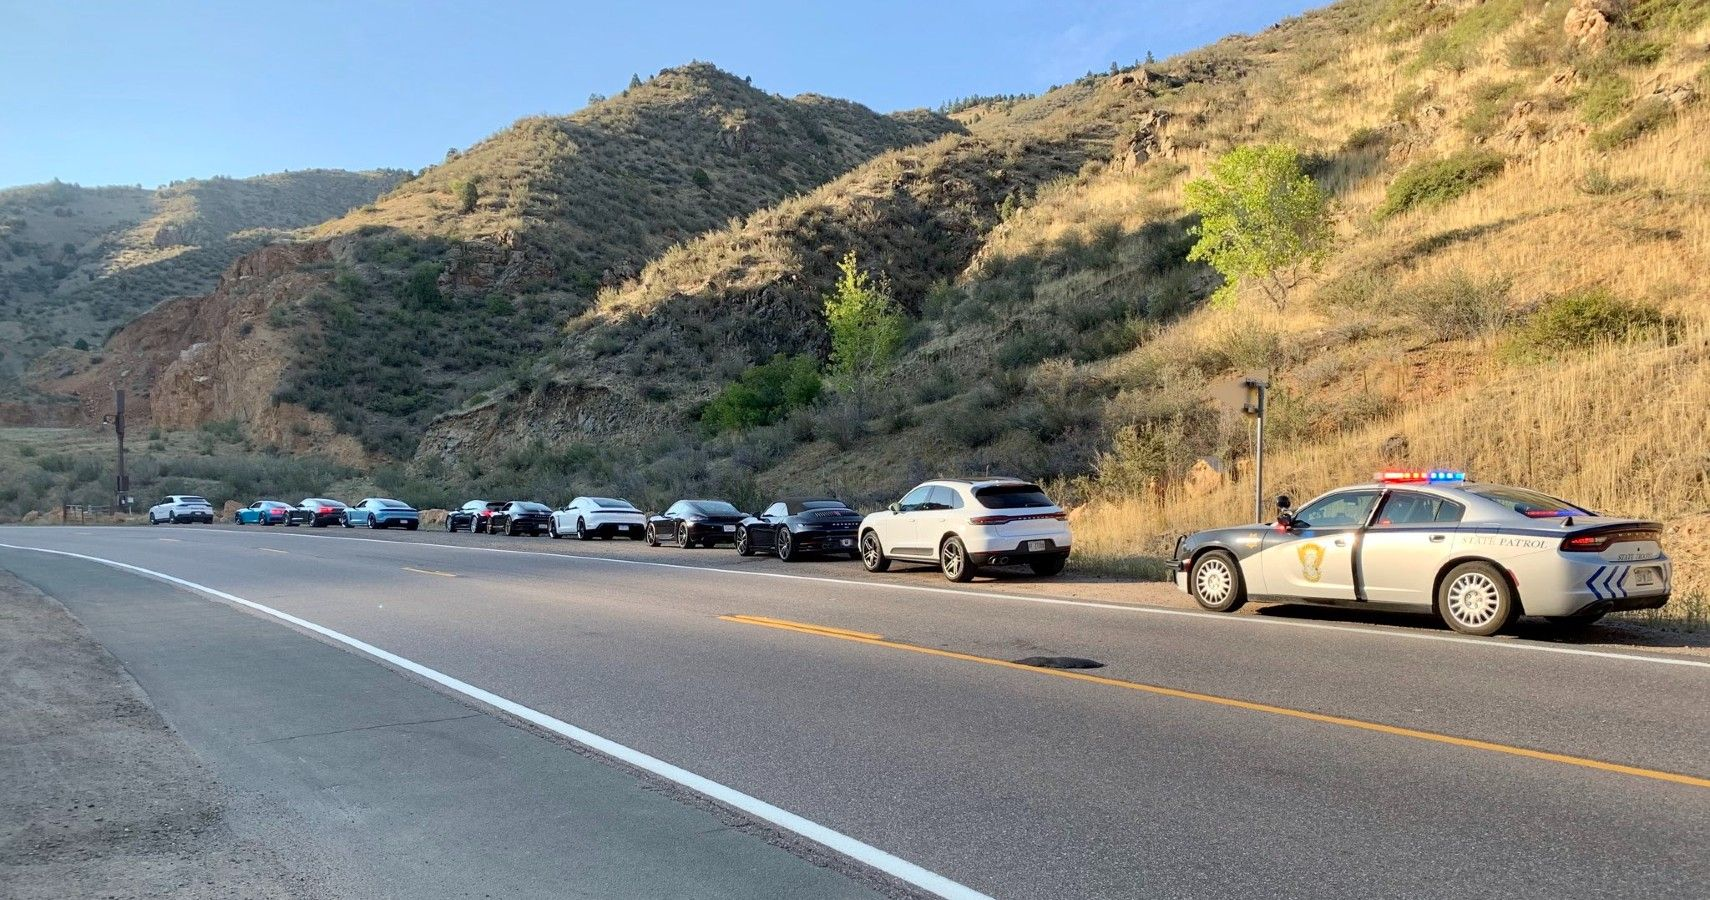 Busted: Single Trooper Tickets A 10 Car Porsche Caravan For Speeding